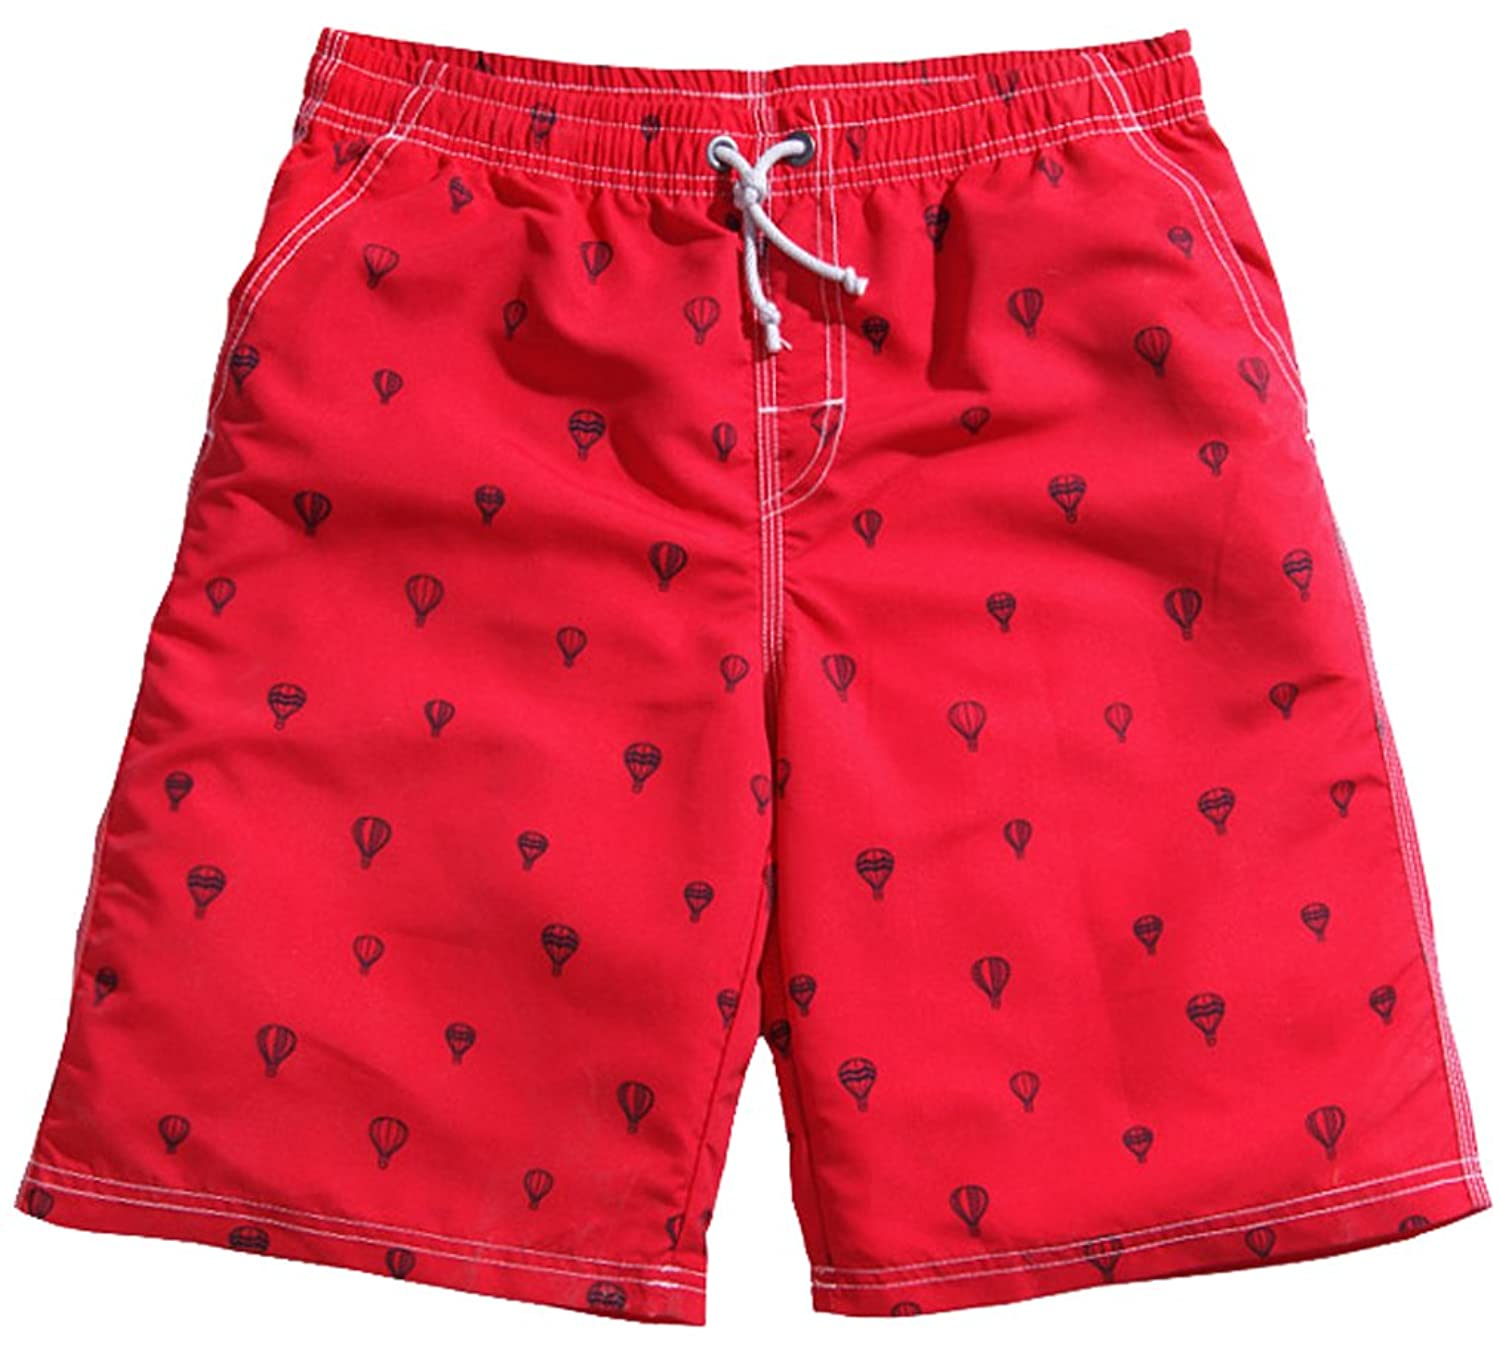 aaf47cc20be48 hot sale 2017 Wishwhat Men s Hot Air Balloon Summer Swim Trunks Surf Shorts  Board Shorts · Oberora Womens Casual Ripped Elastic Bodycon Denim Pants  Jeans ...